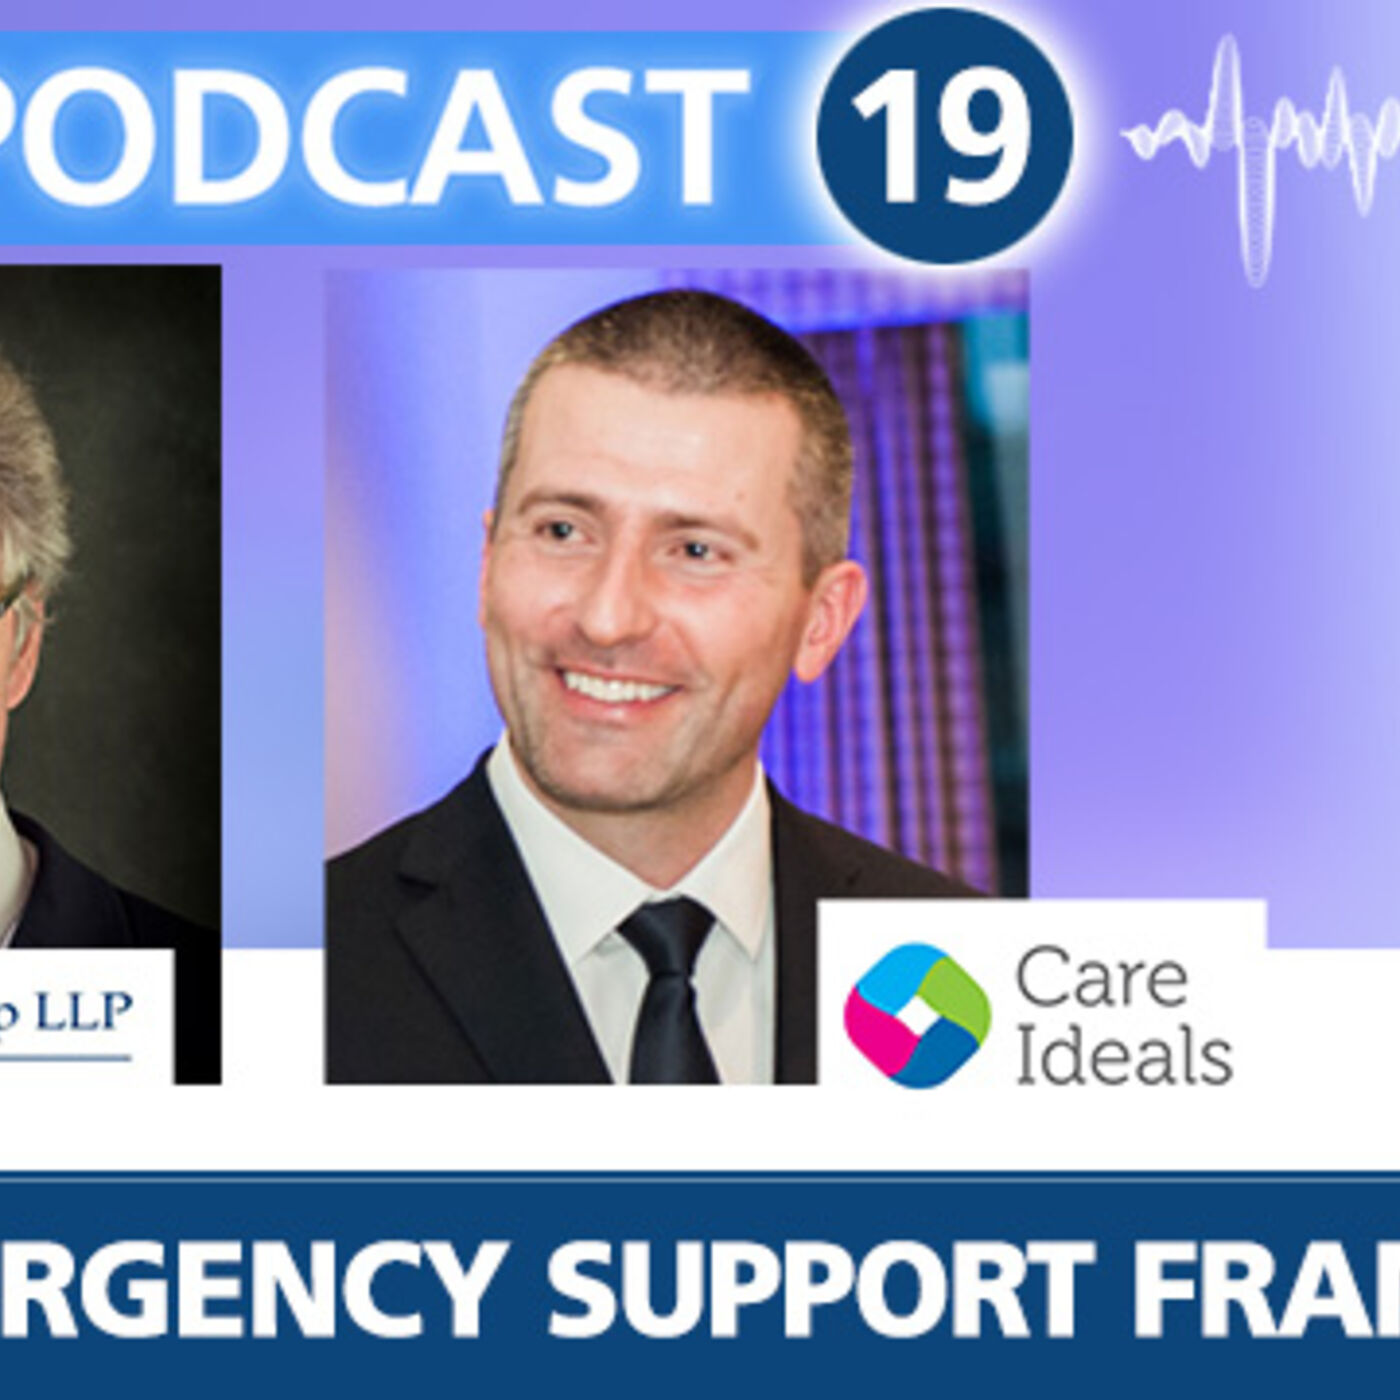 How to prepare for the CQC's Emergency Support Framework - Care Home Management COVID-19 podcast